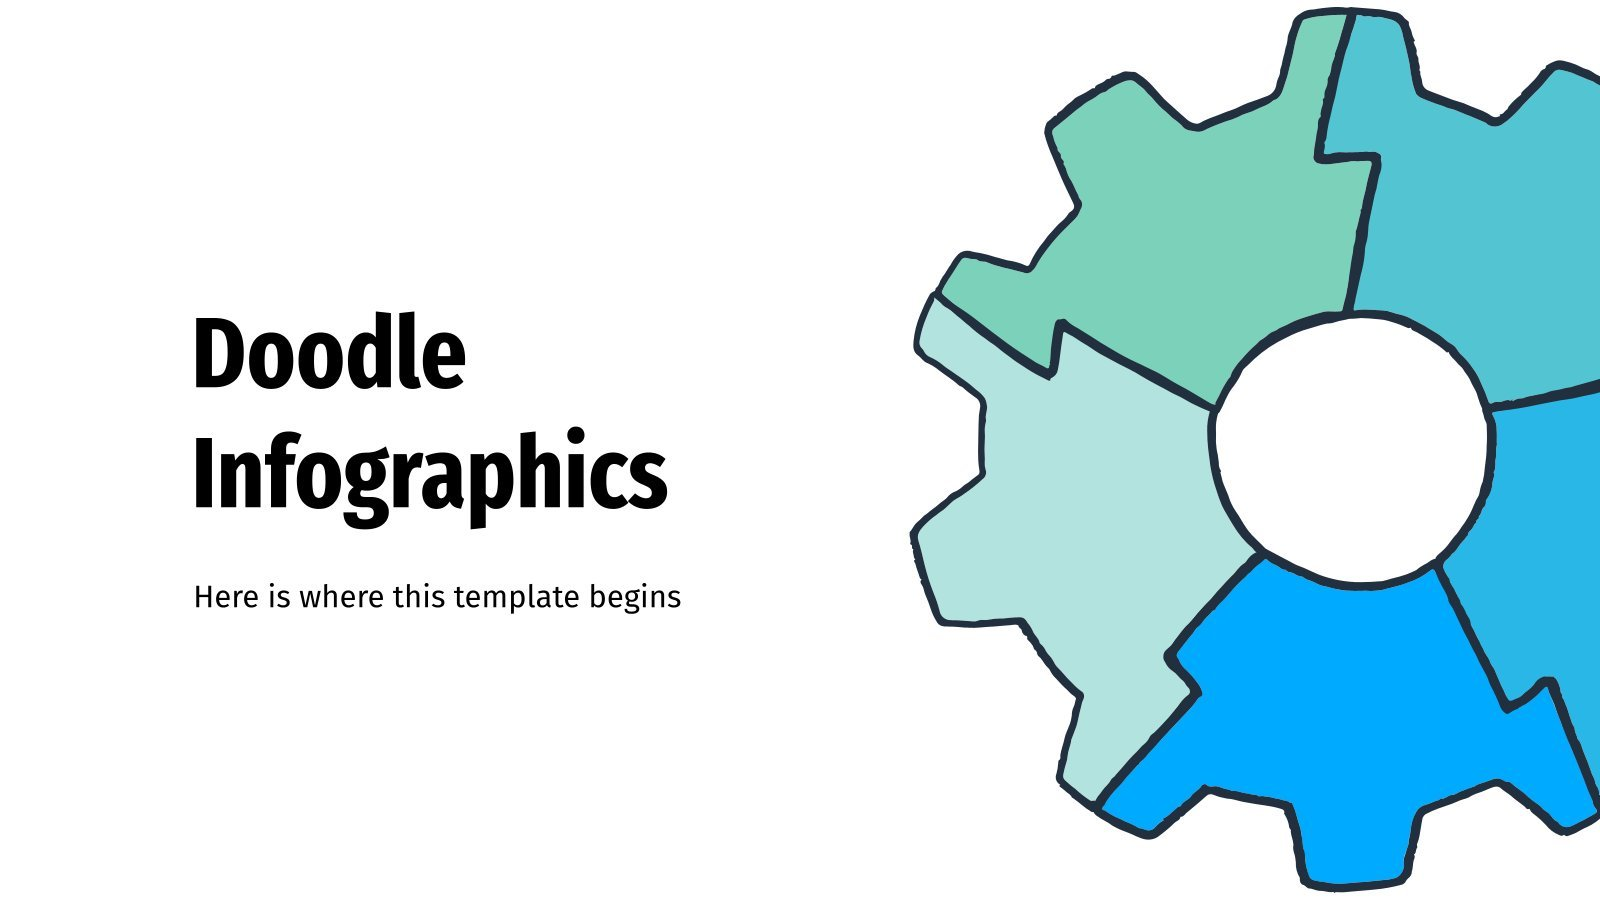 Doodle Infographics presentation template